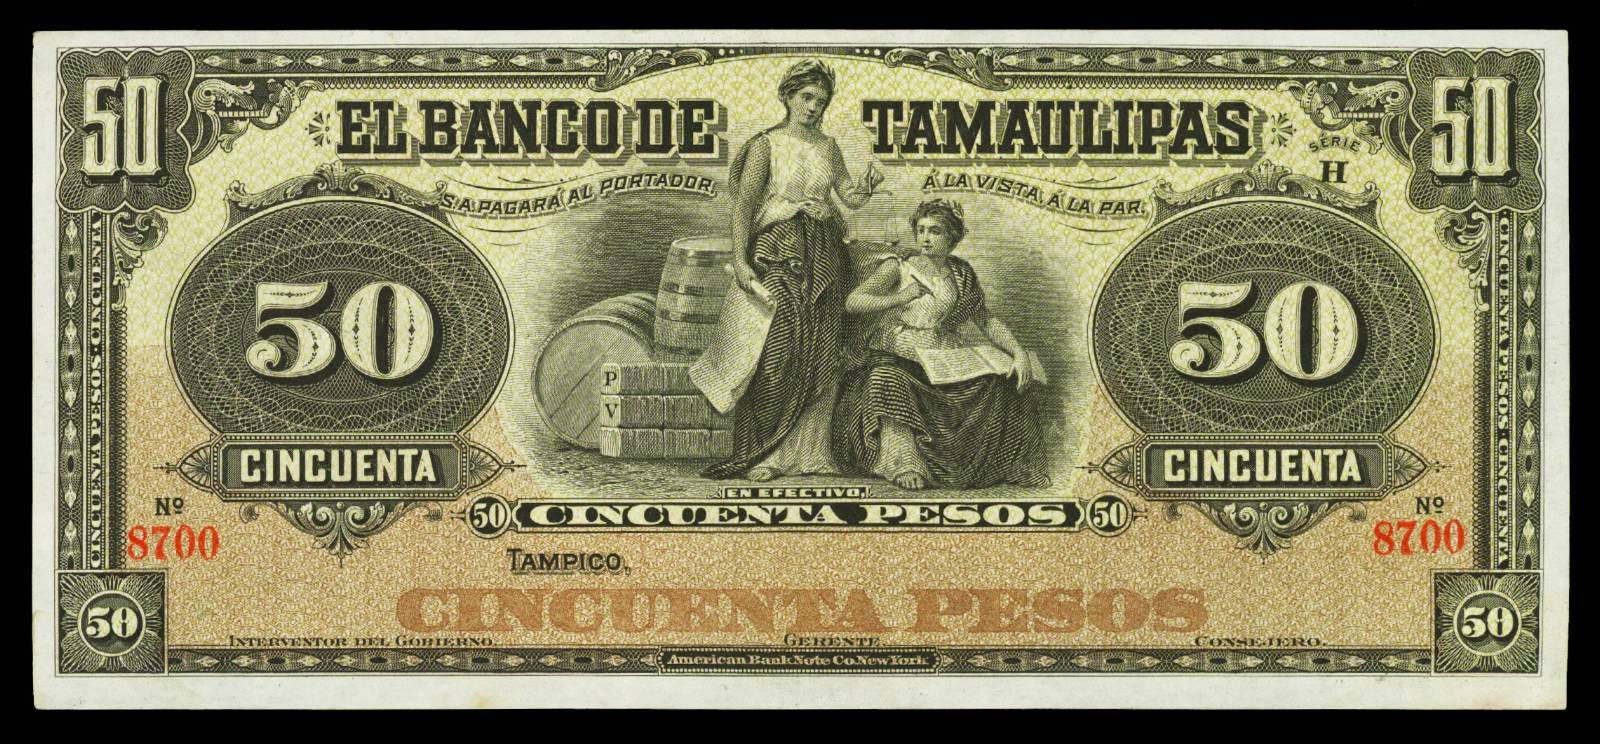 Coins pictures old money foreign currency notes world paper money